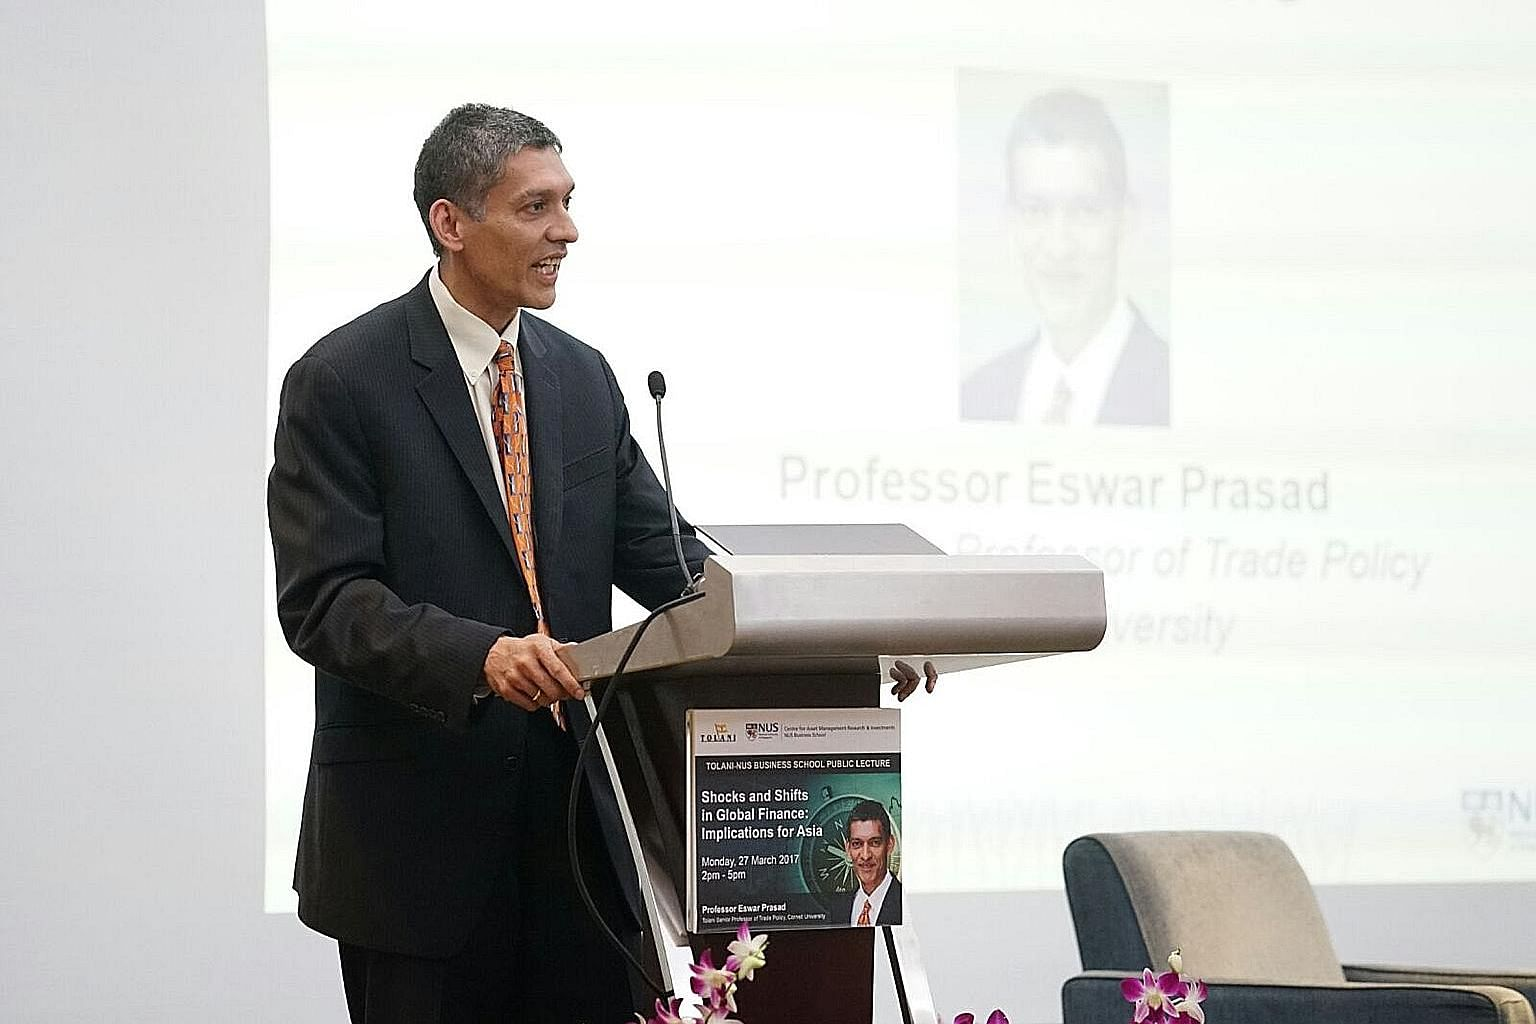 Prof Prasad, speaking at an NUS Business School public lecture yesterday, said that regional countries may have little choice but to align more closely with China if it took over the leadership role in shaping the international economic order.